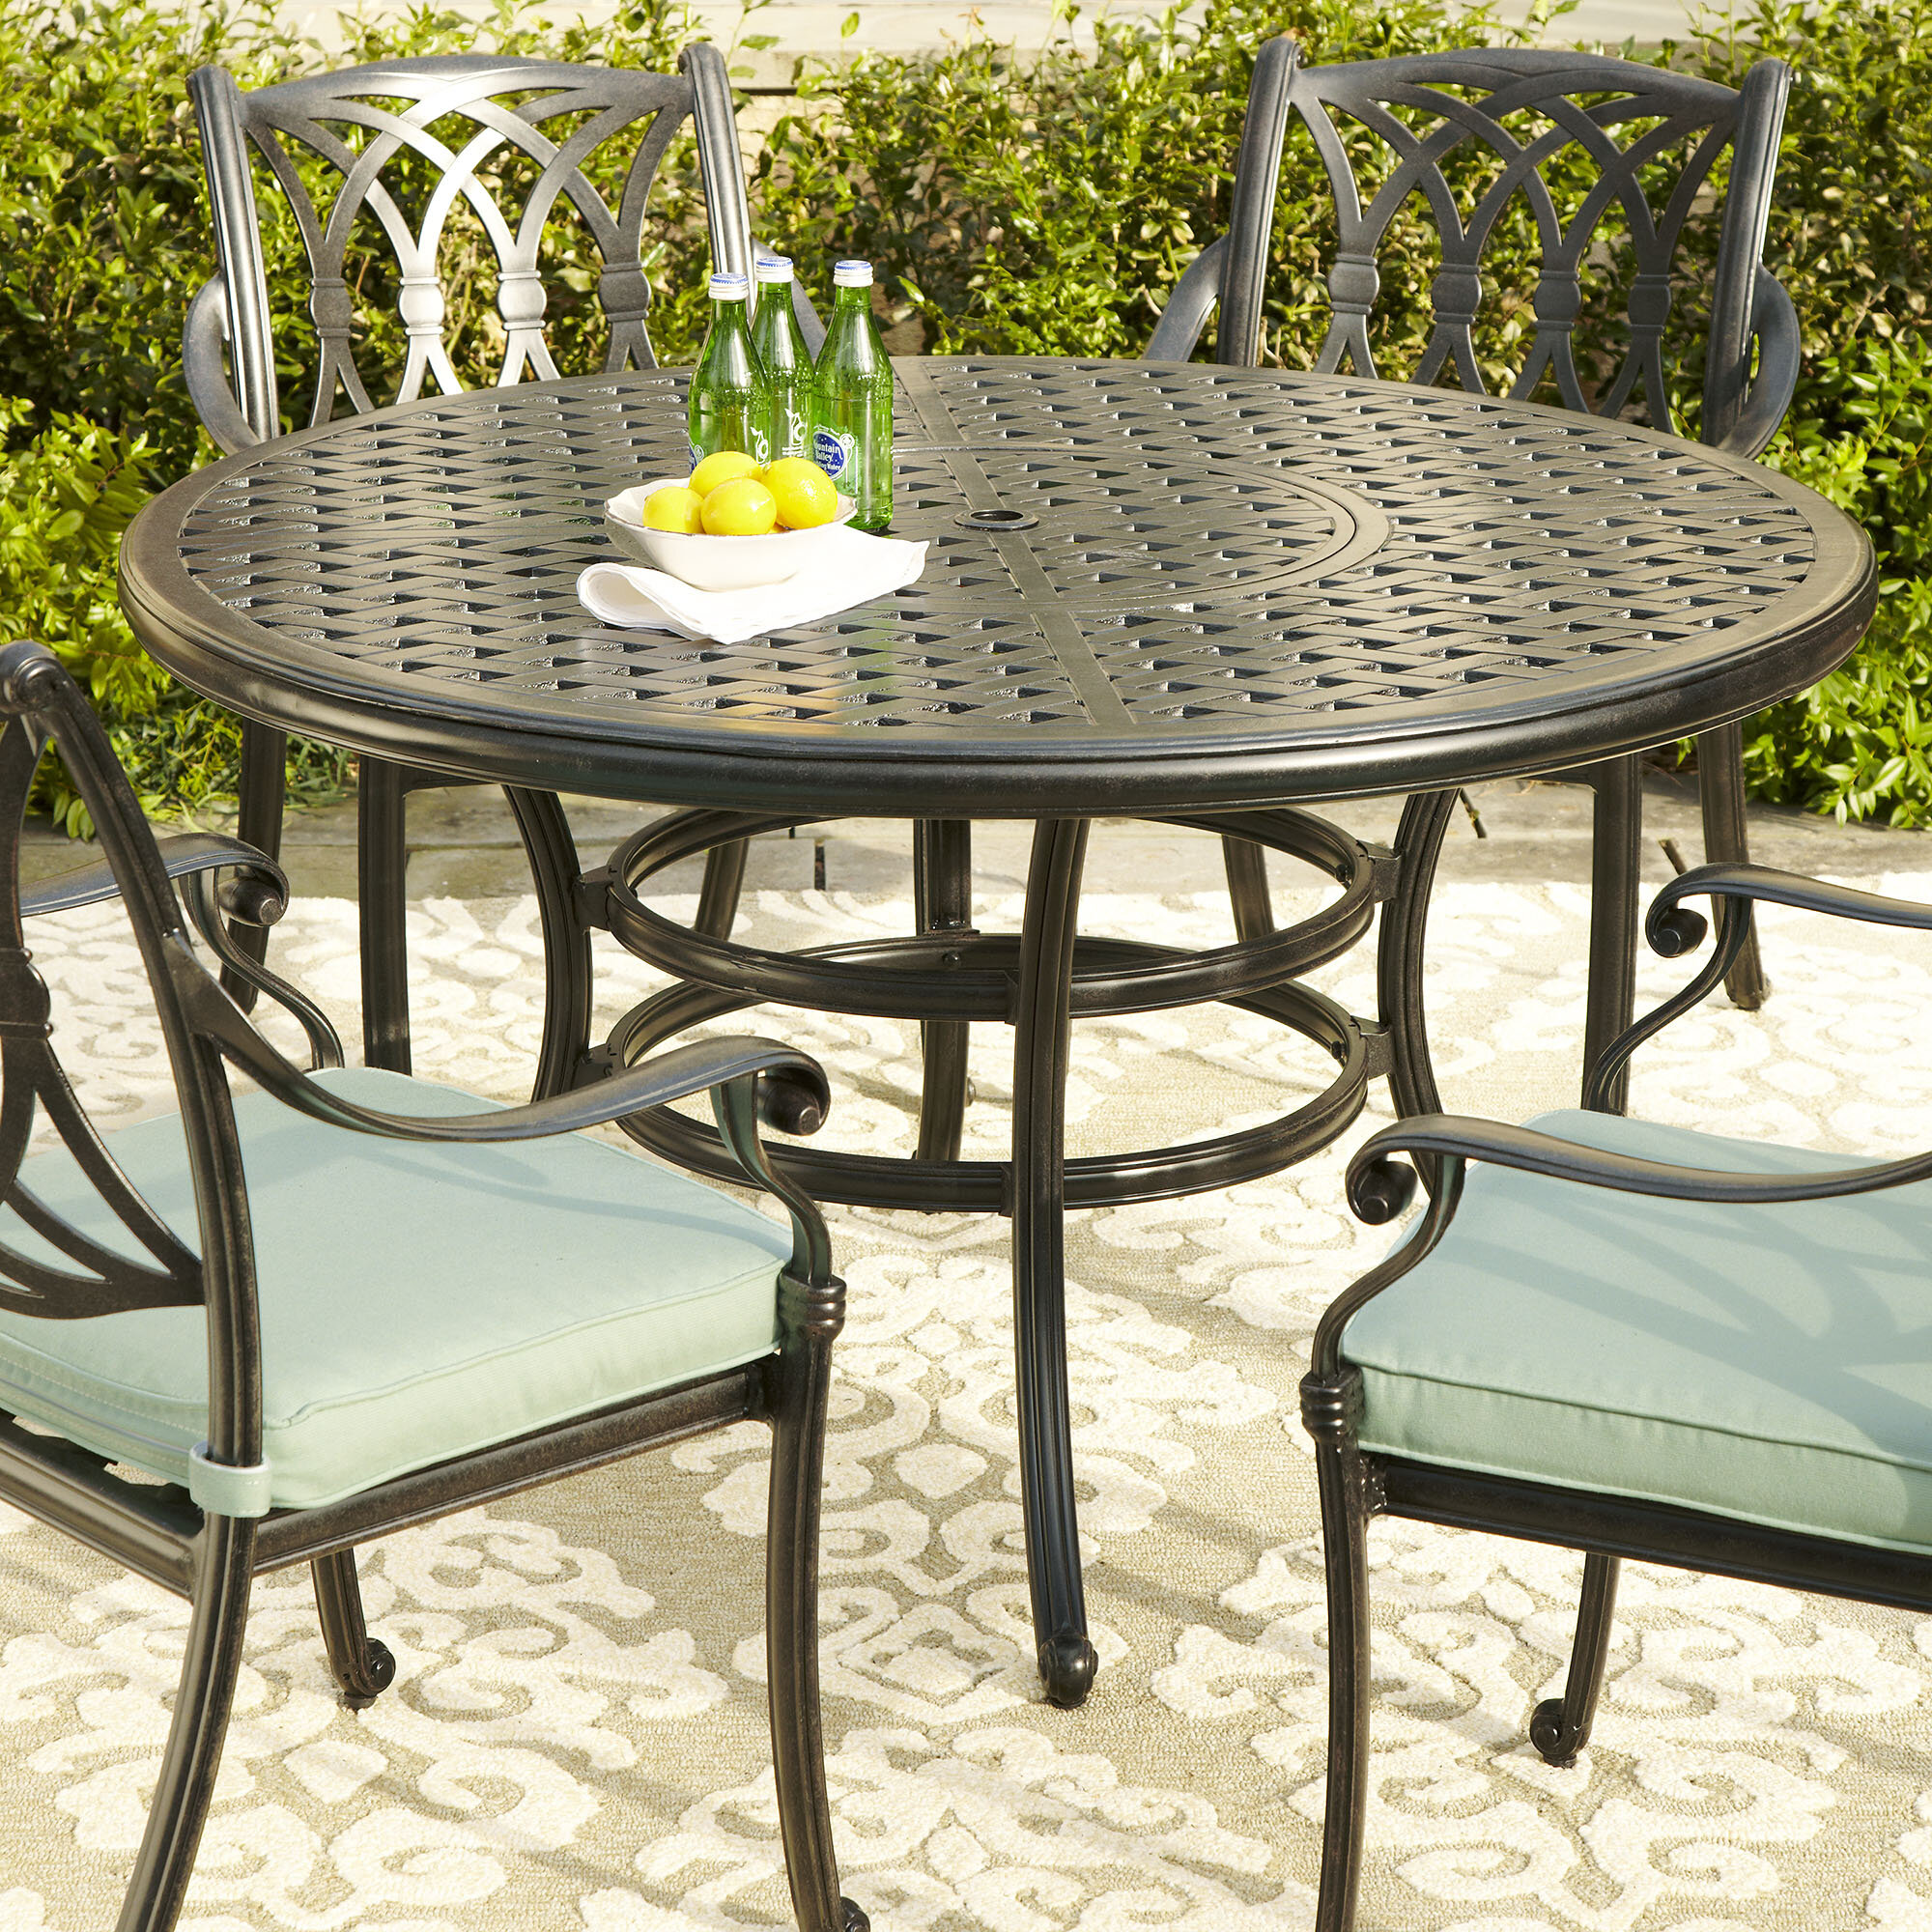 outdoor round dining table. Outdoor Round Dining Table S